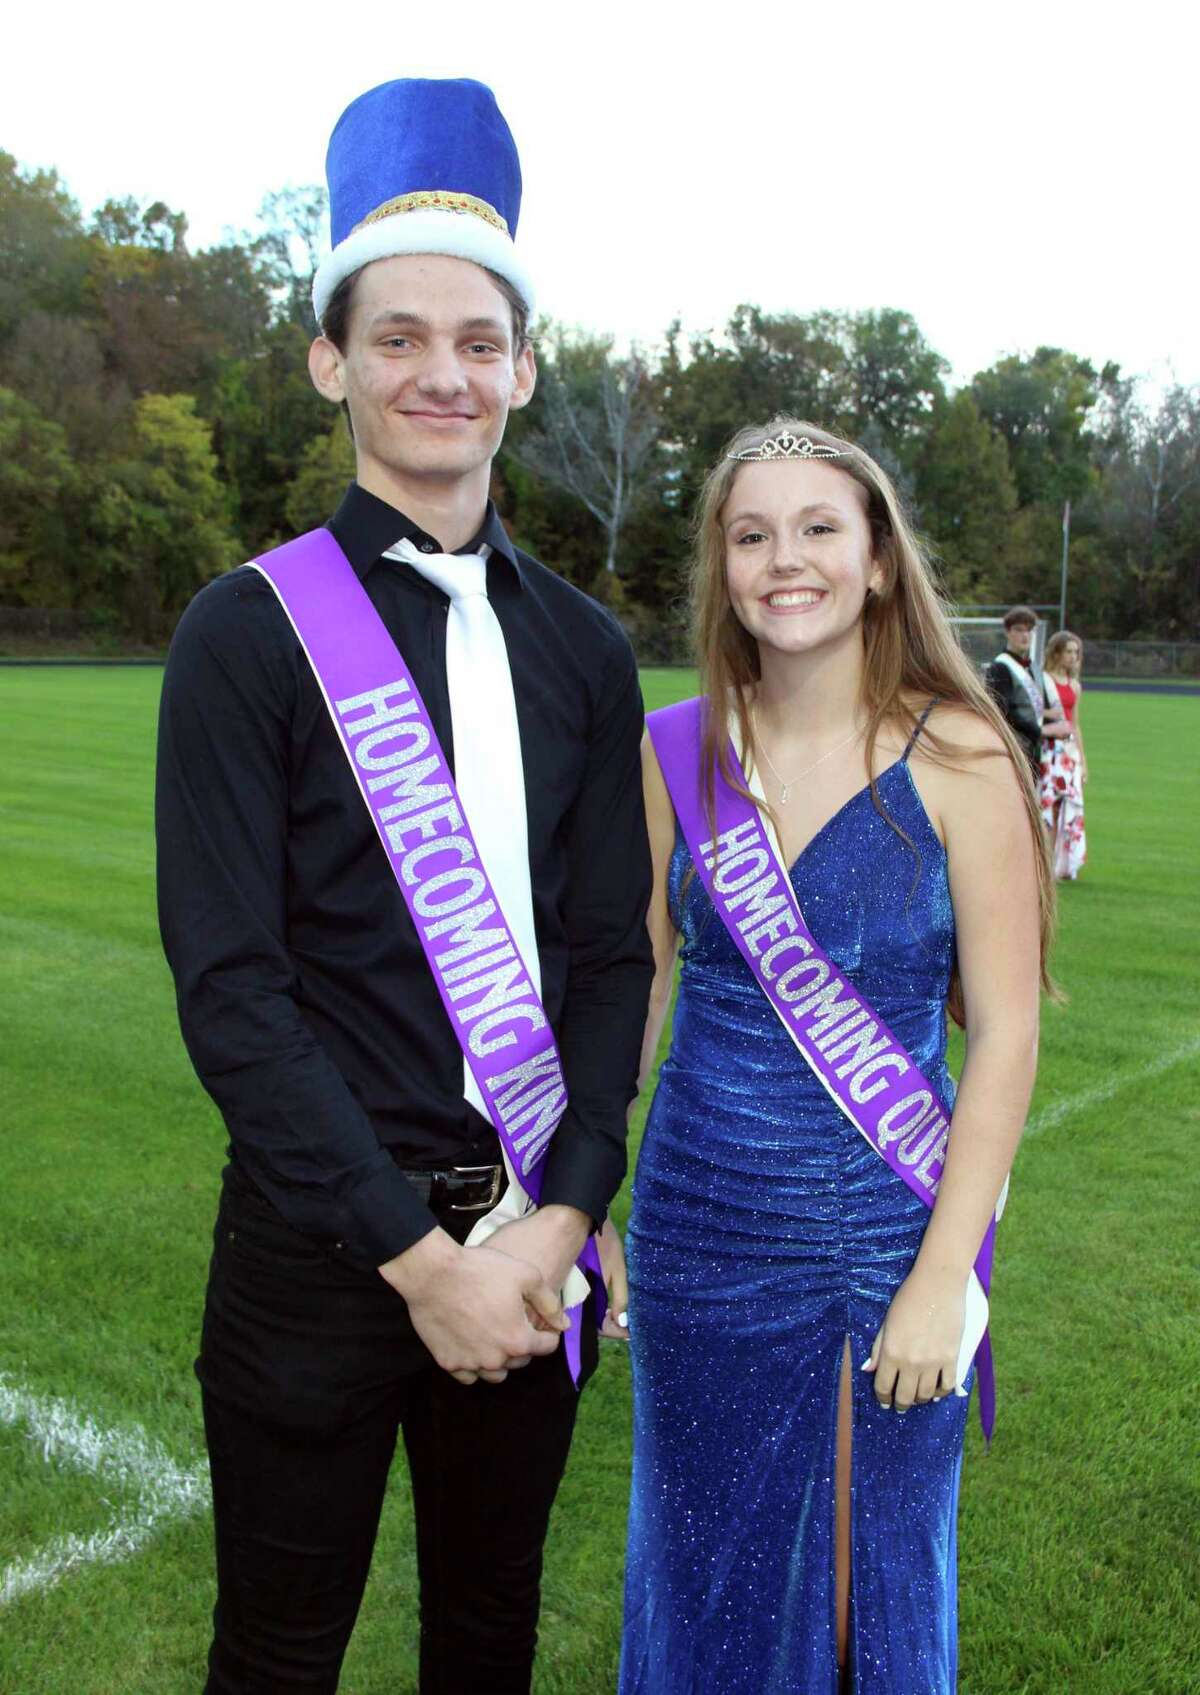 On Friday, Oct. 8, Crossroads Charter Academy crowned Luke Roman and Jessica Cole as this year's Homecoming King and Queen. (Courtesy photo)